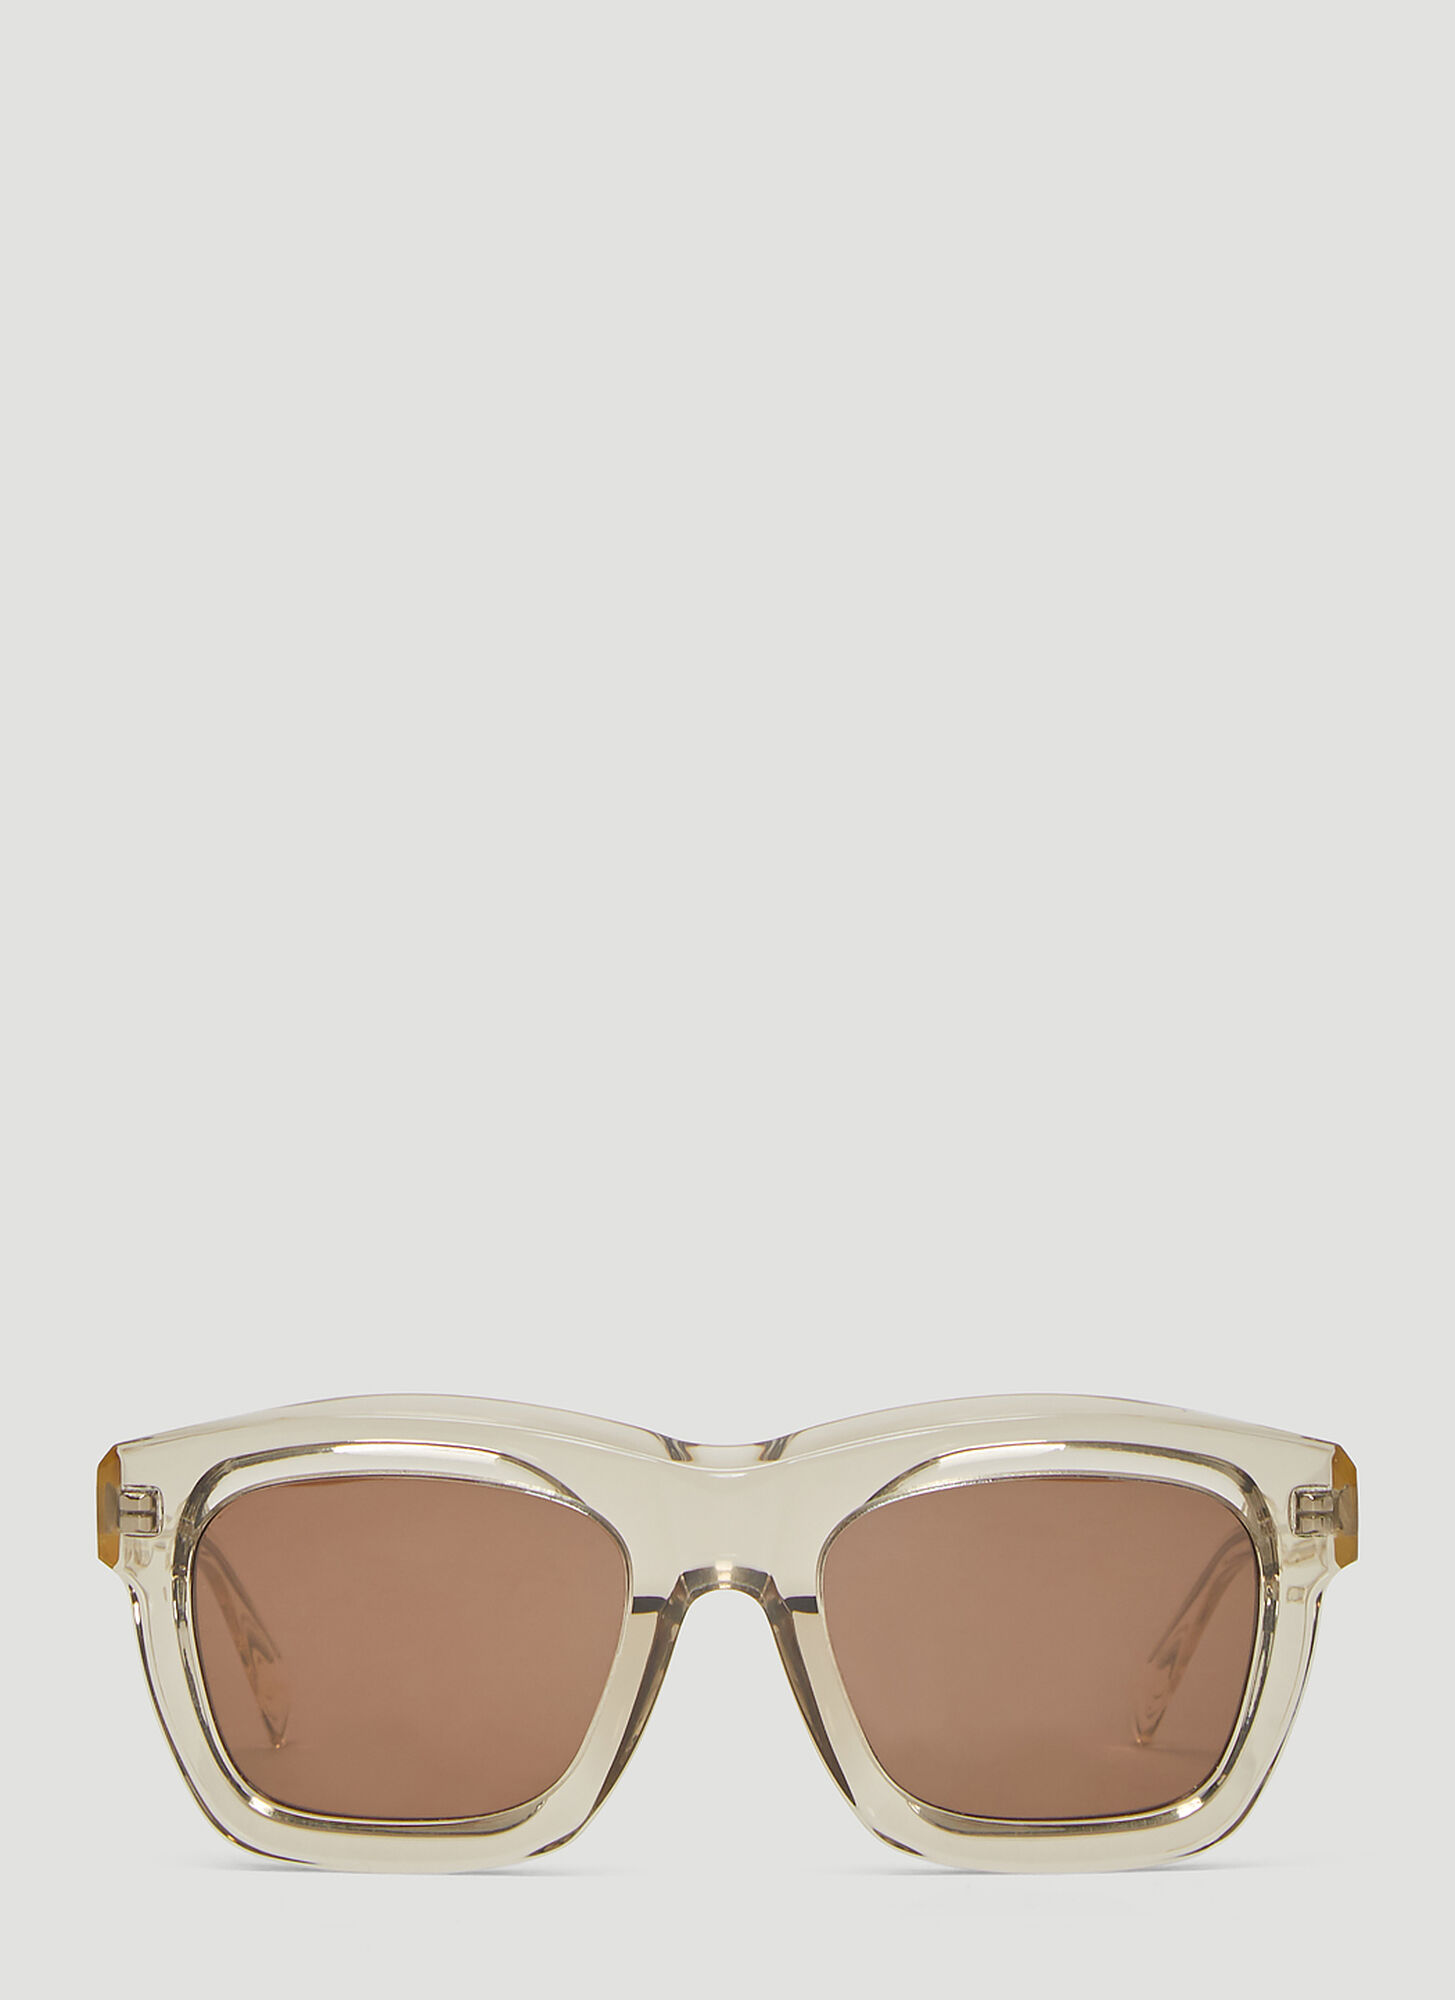 Kuboraum Maske C2 Square Sunglasses in Silver